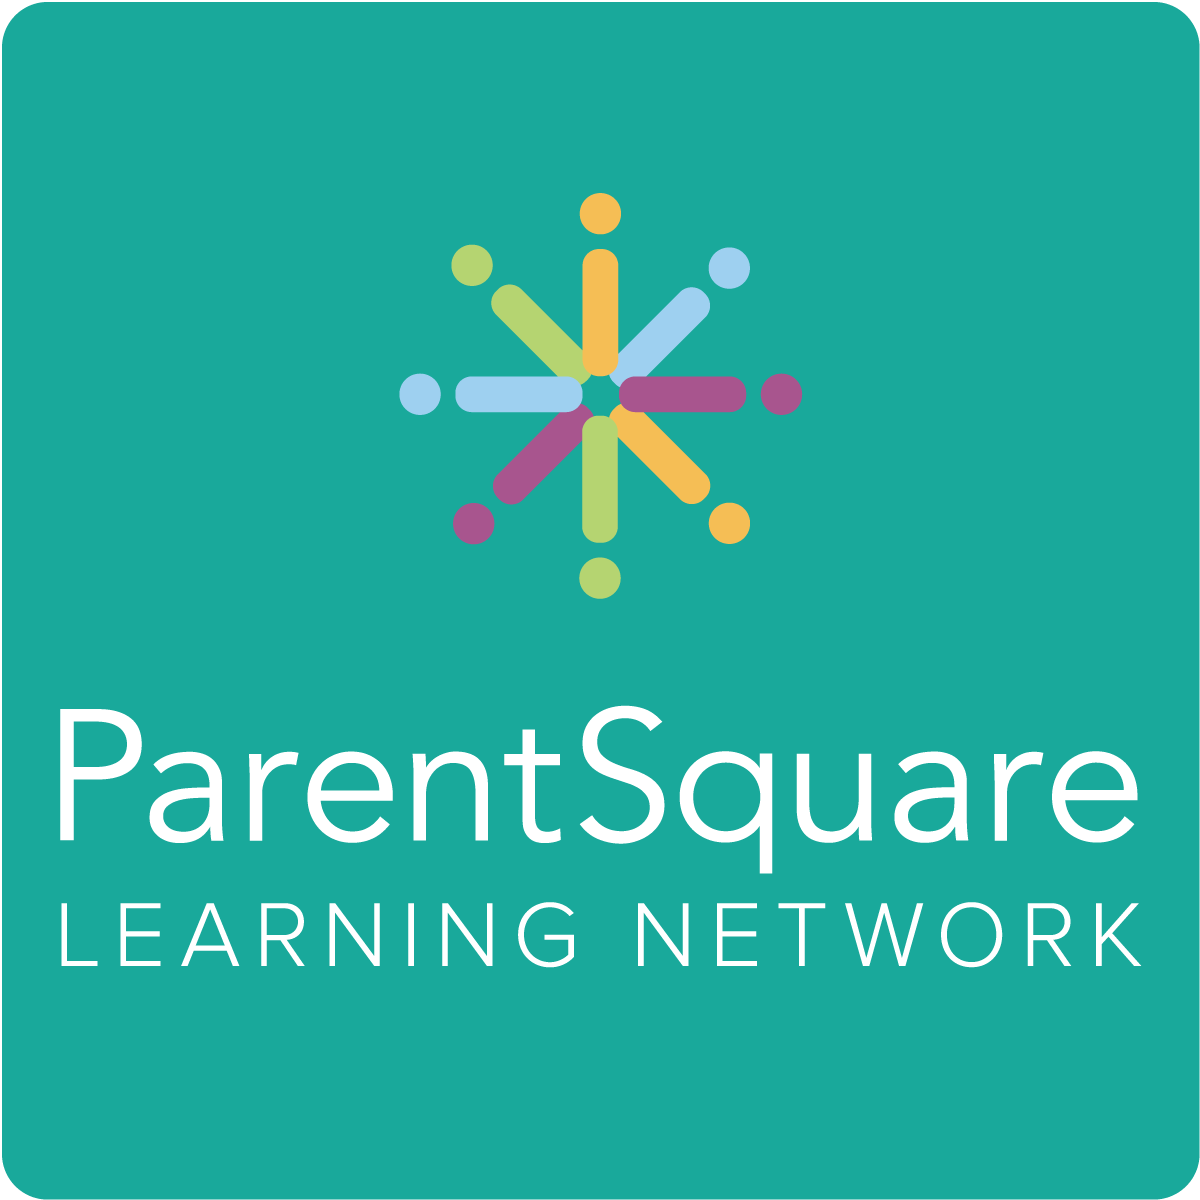 ParentSquare Learning Network